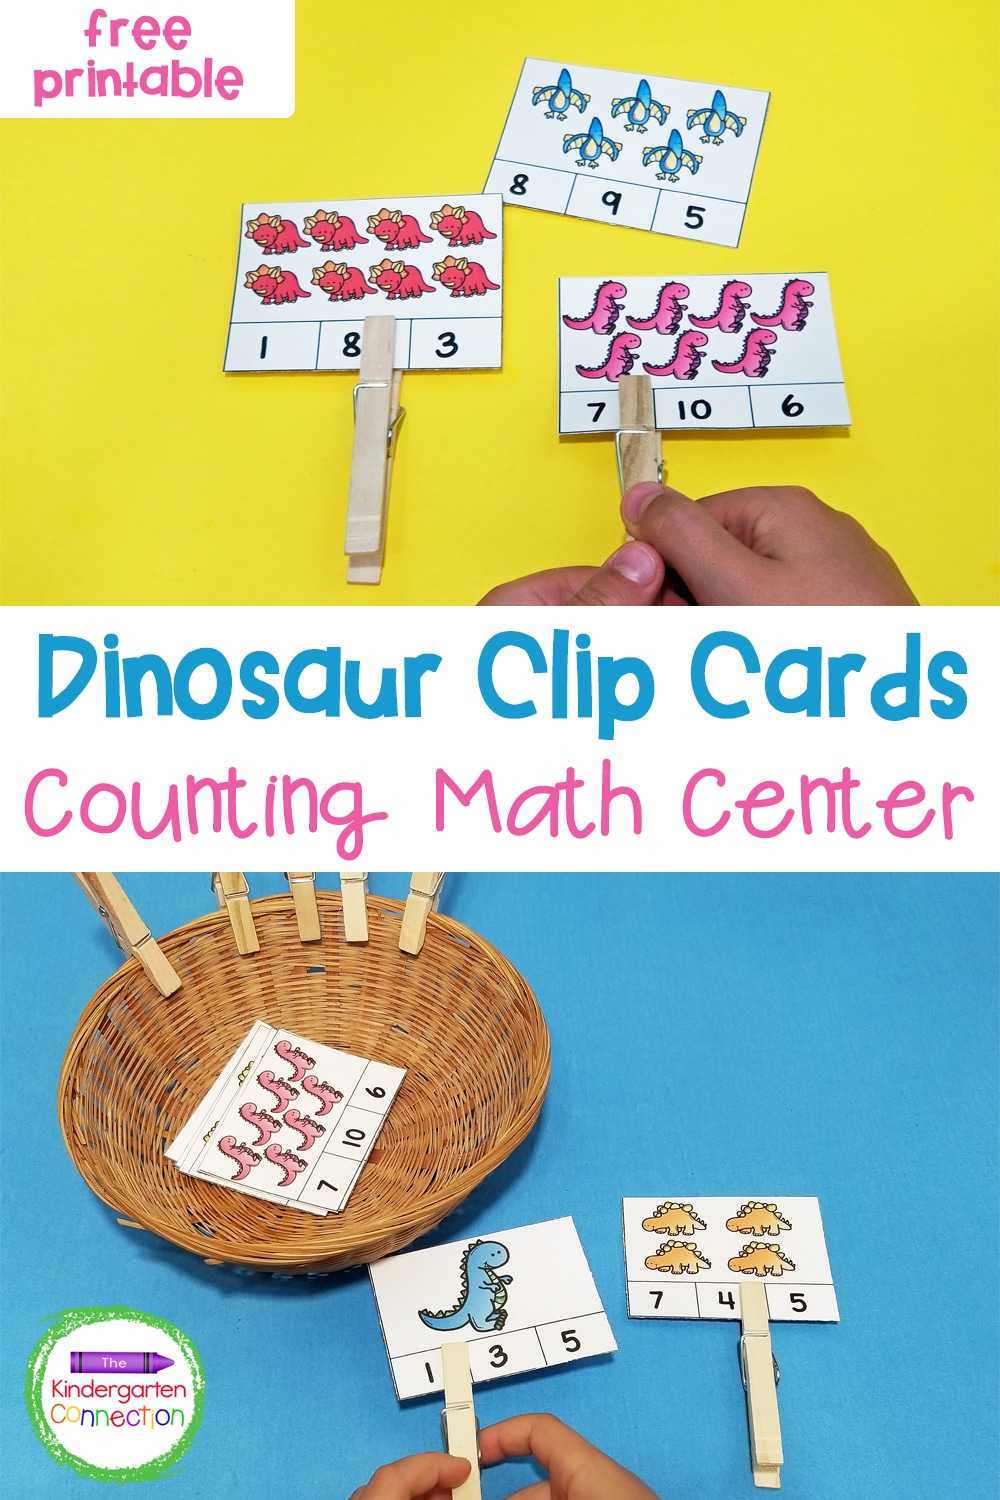 Work on counting, number recognition, and reading numbers with these fun and free Dinosaur Counting Cards for Pre-K & Kindergarten!